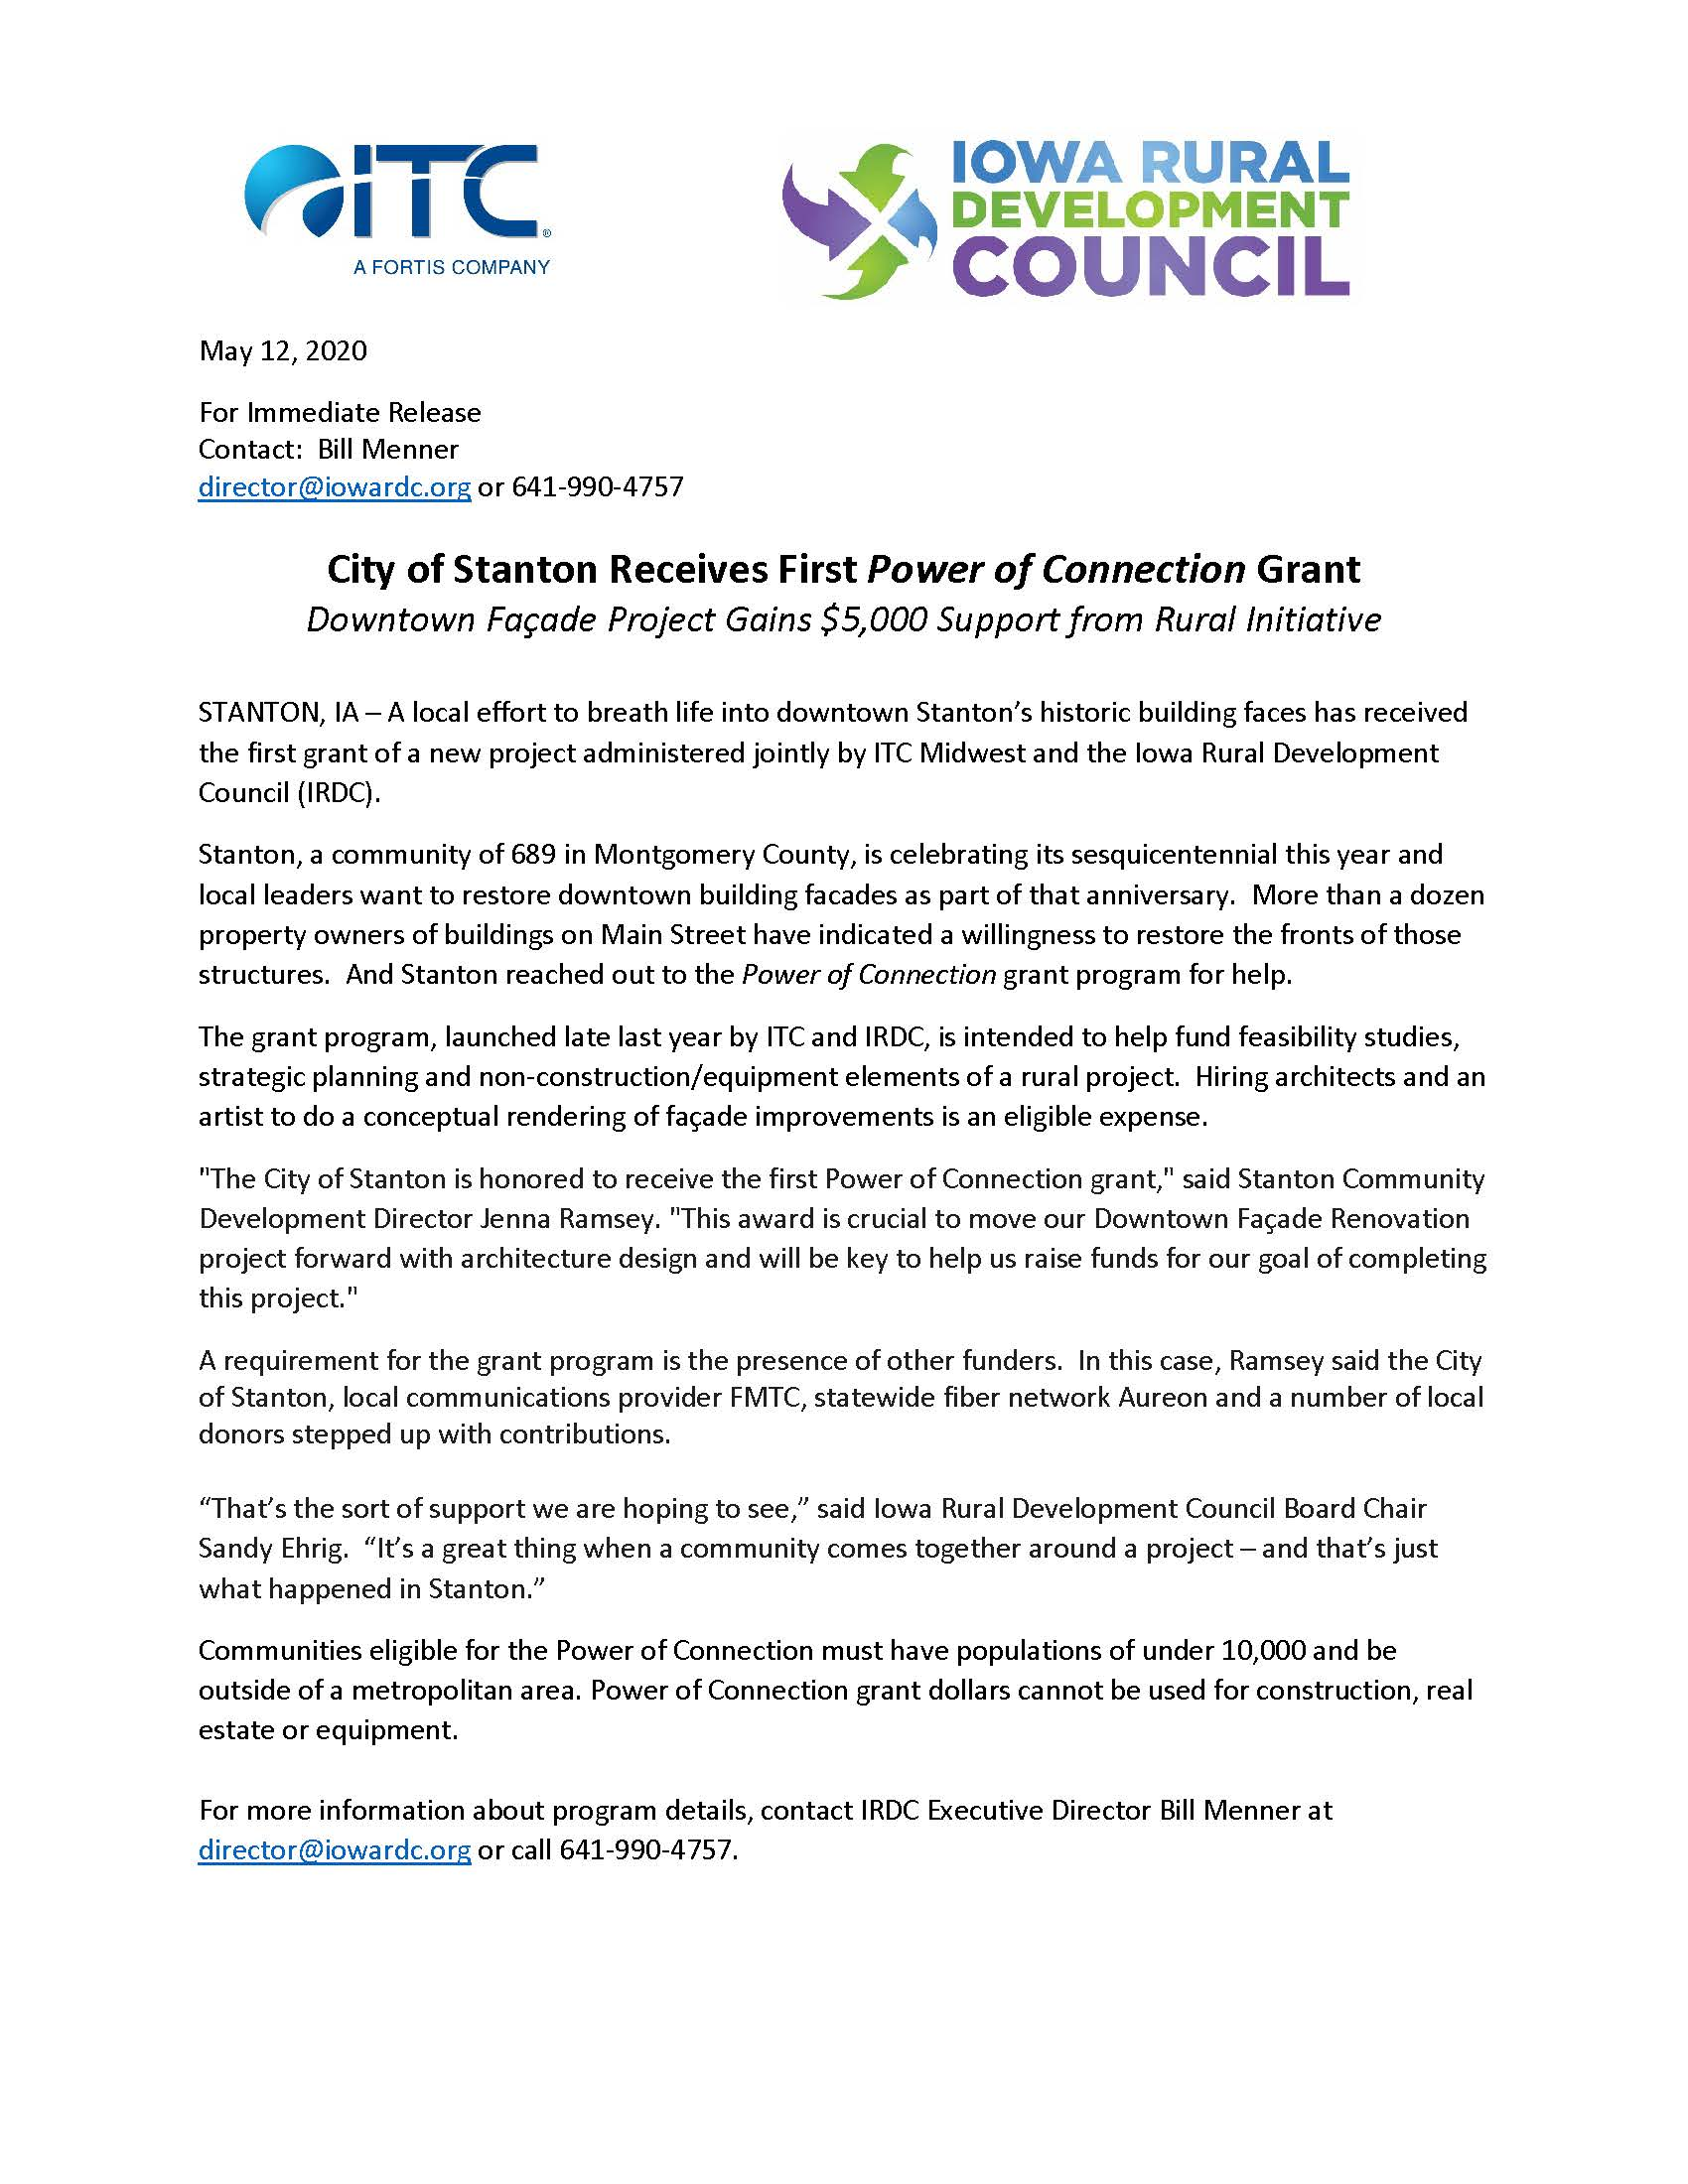 City of Stanton Receives First Power of Connection Grant